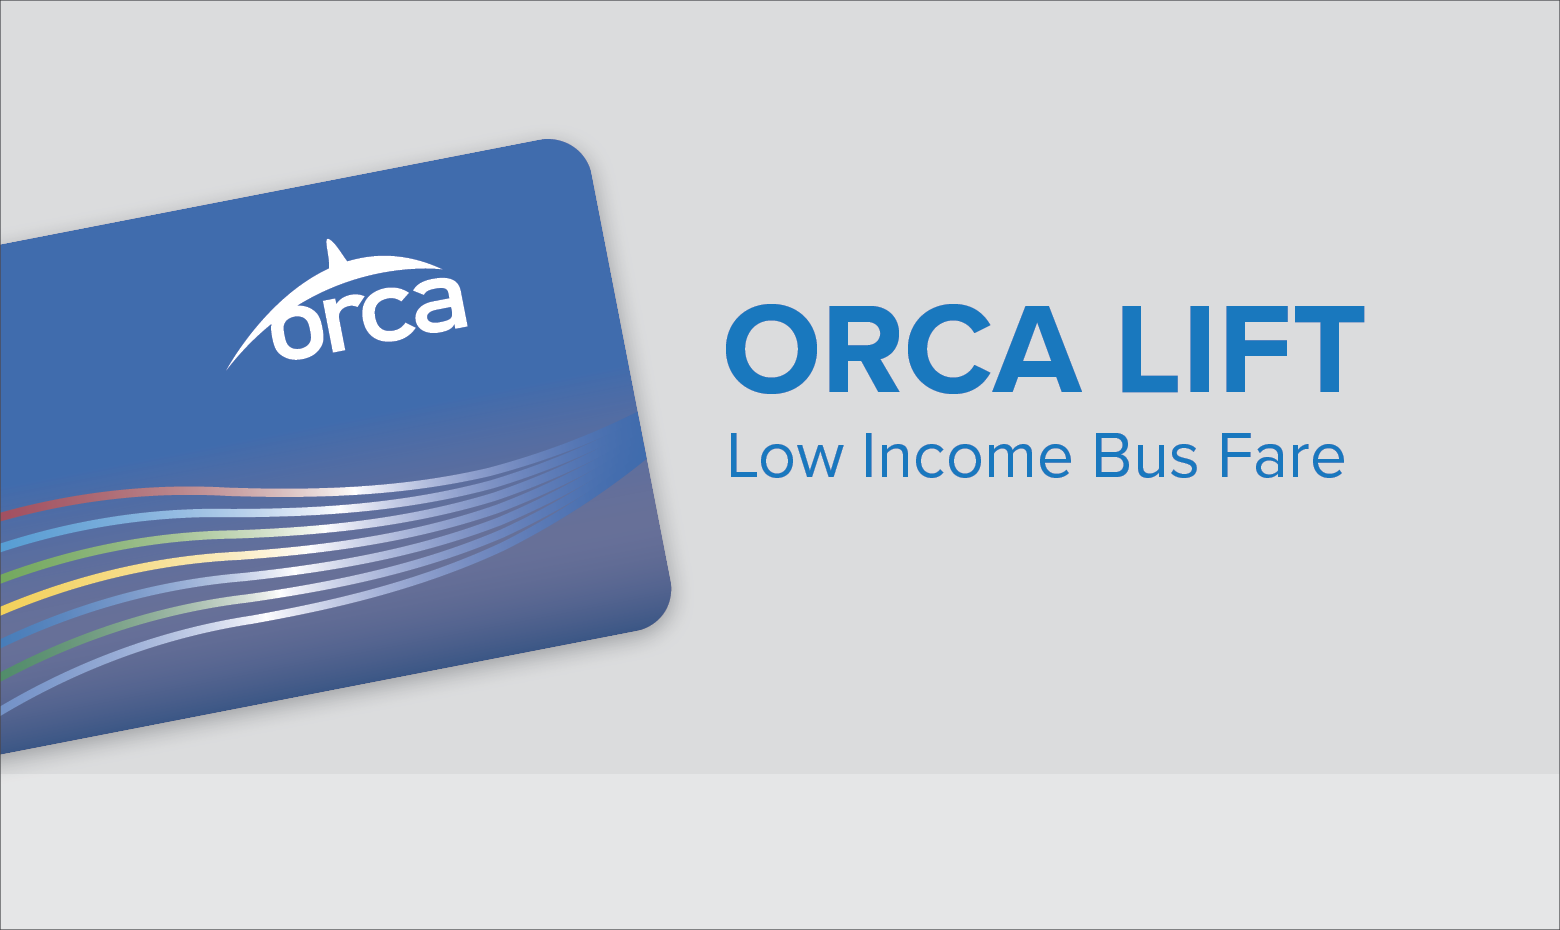 ORCA LIFT: Reduced Fare for Income-Eligible Residents